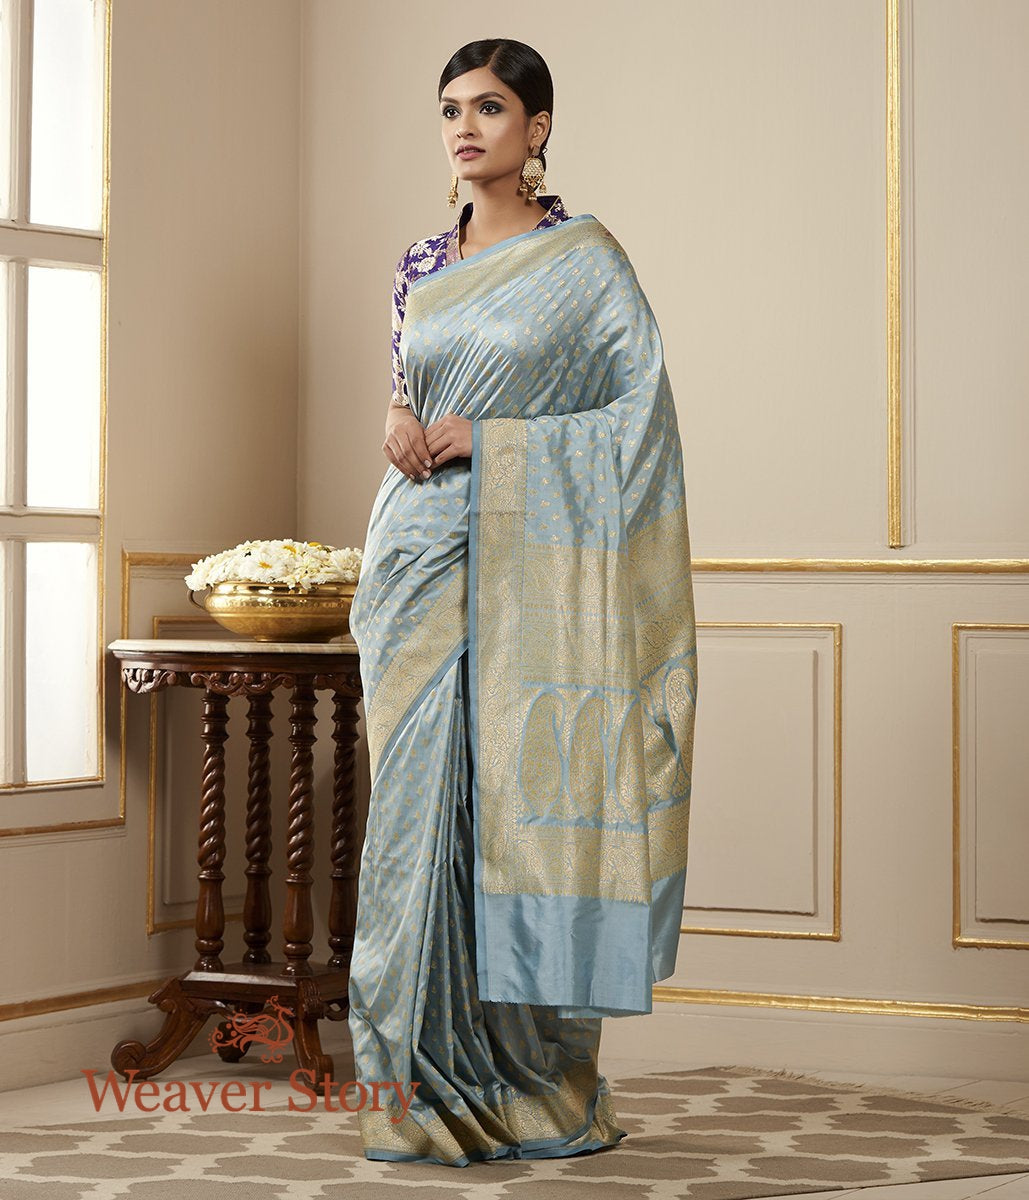 Handwoven Light Blue Pure Silk Saree with Paisley Booti